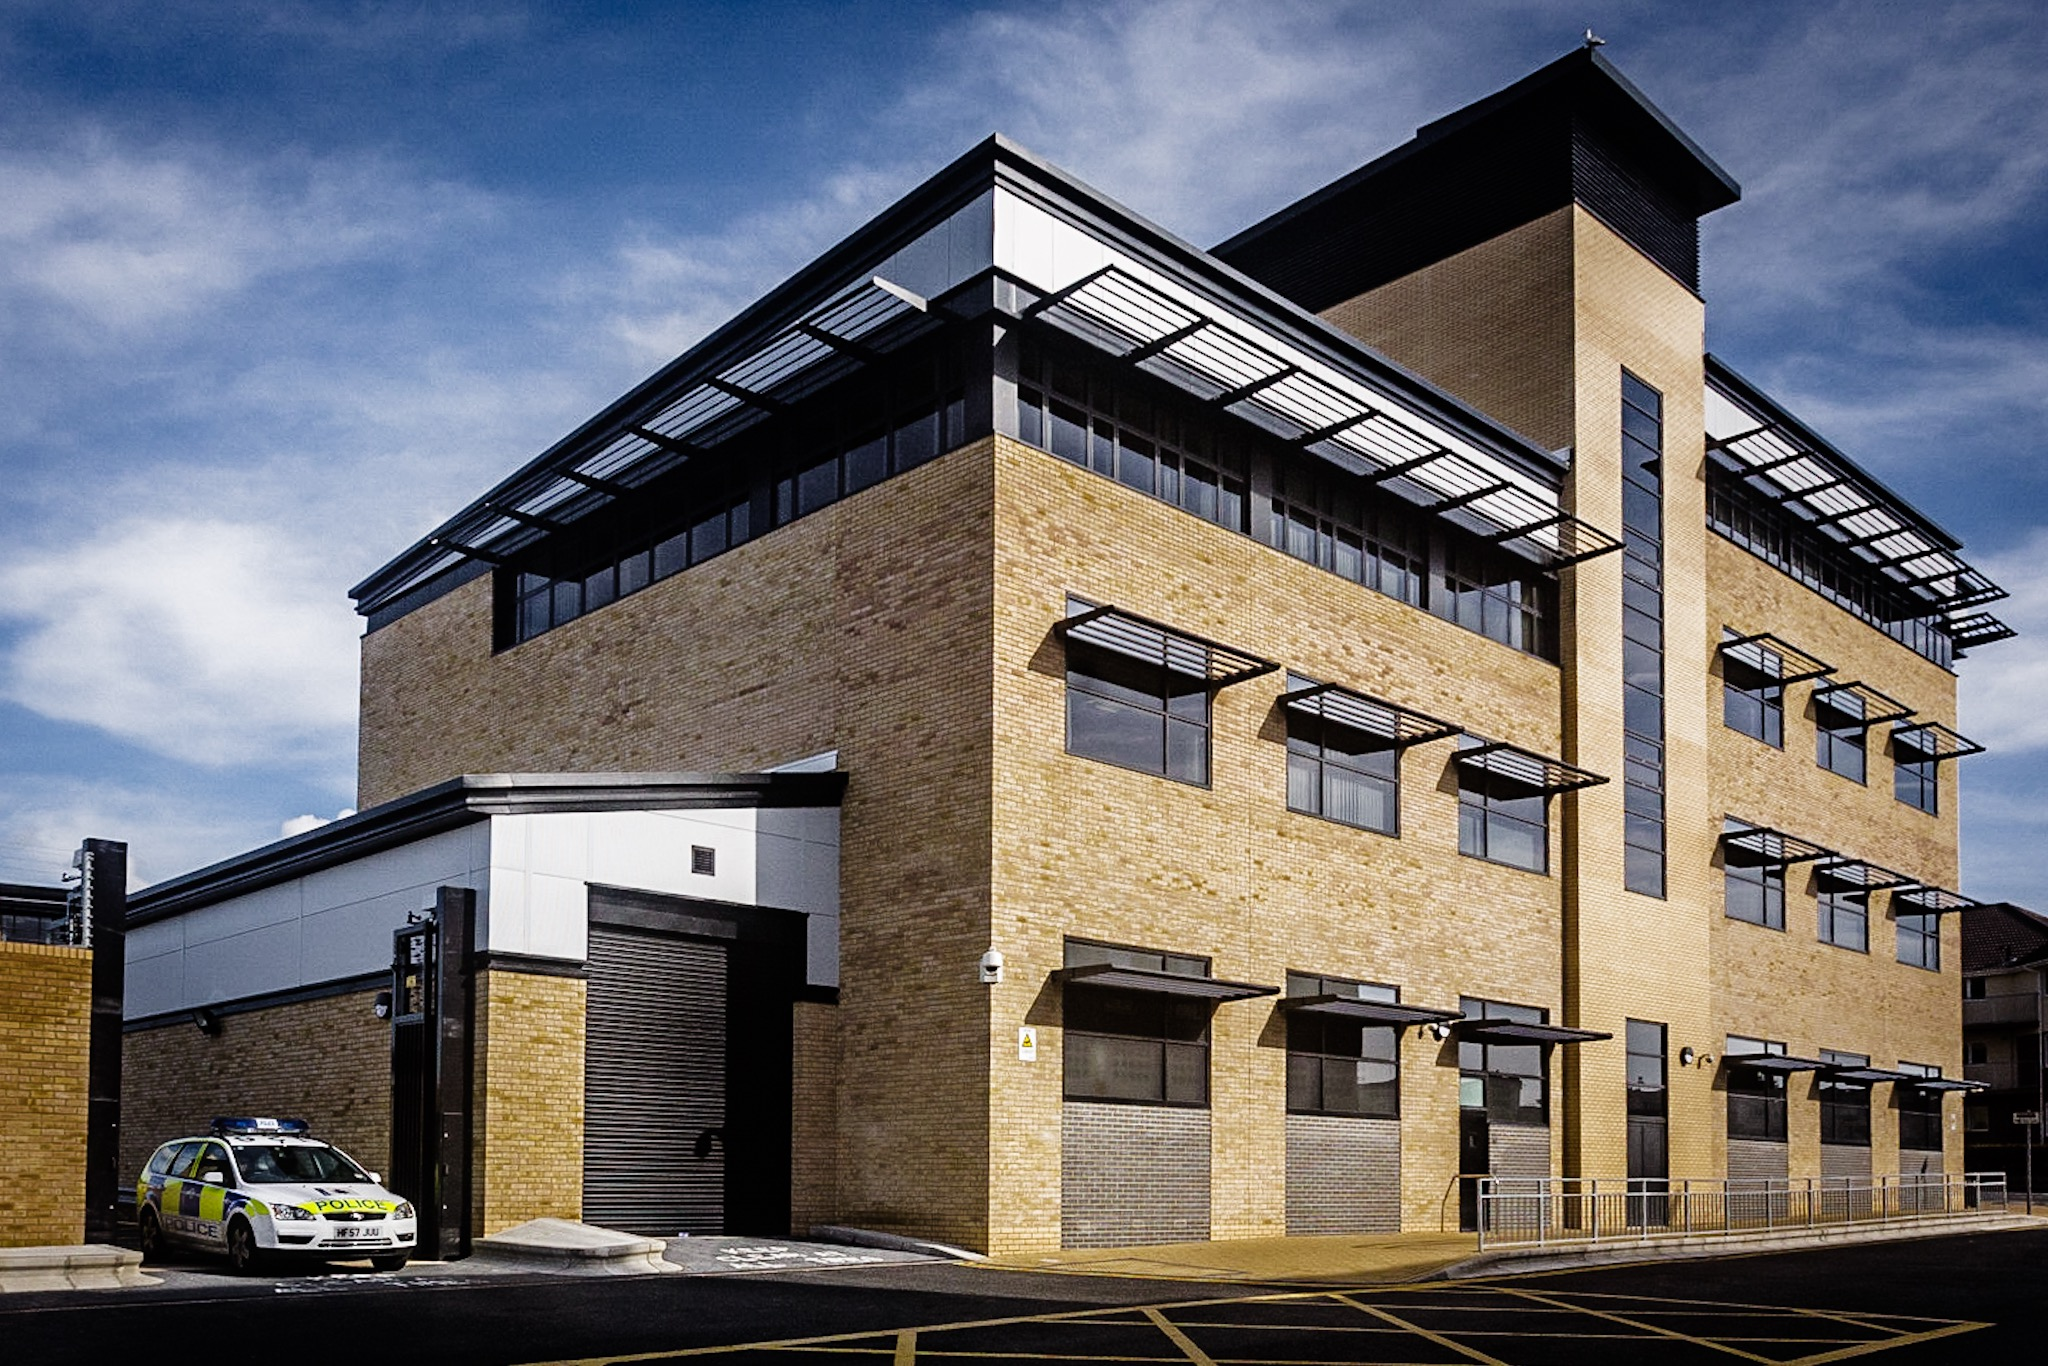 Poole Police Station by Rick McEvoy Architectural Photographer in Poole